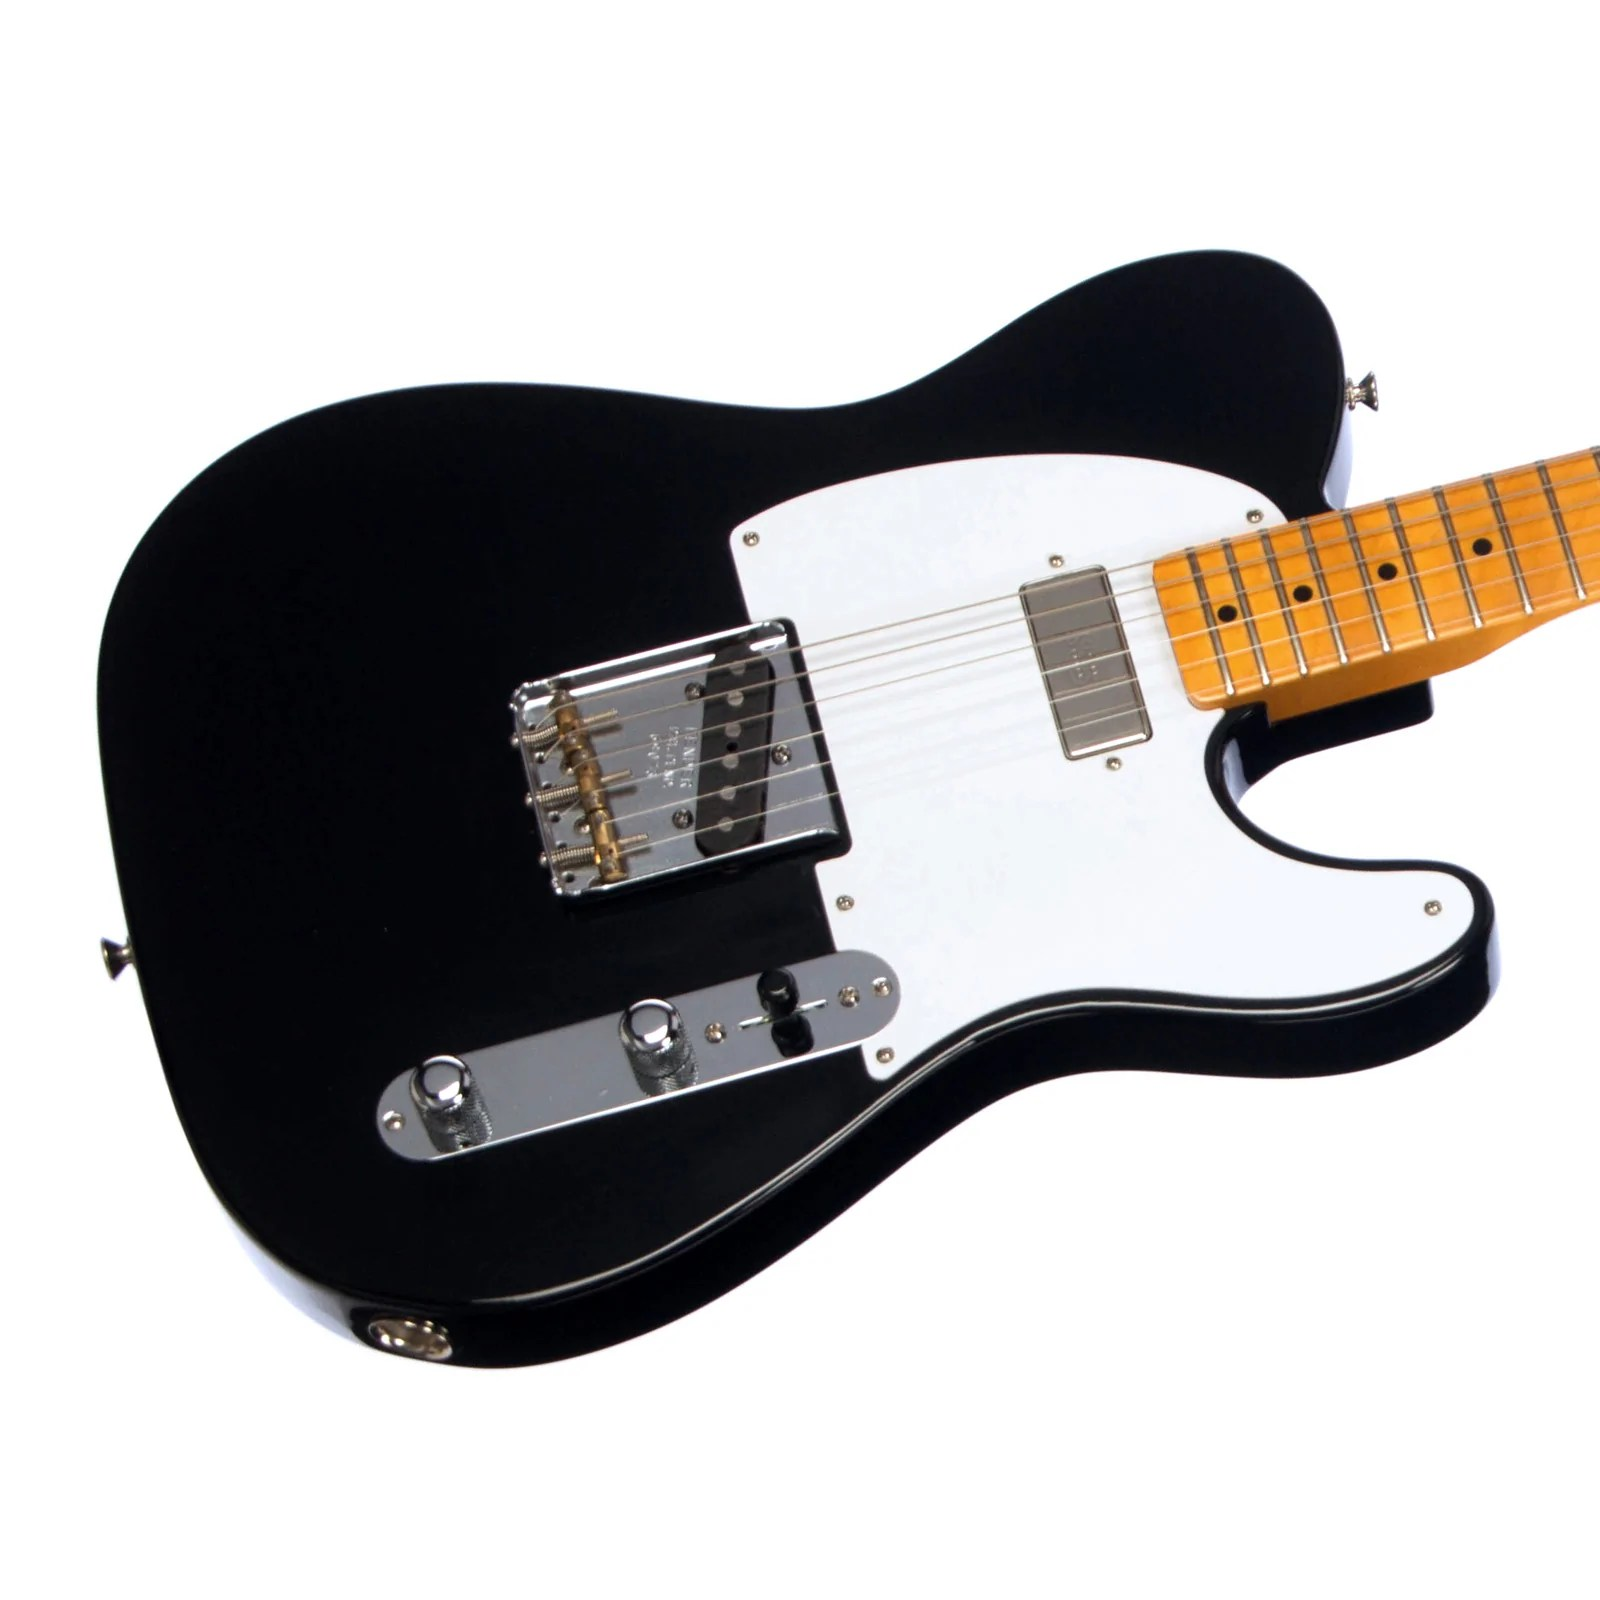 hight resolution of used fender vintage hot rod 52 telecaster black electric guitar american vintage ri 3952 telecaster loaded control plate jack wiring